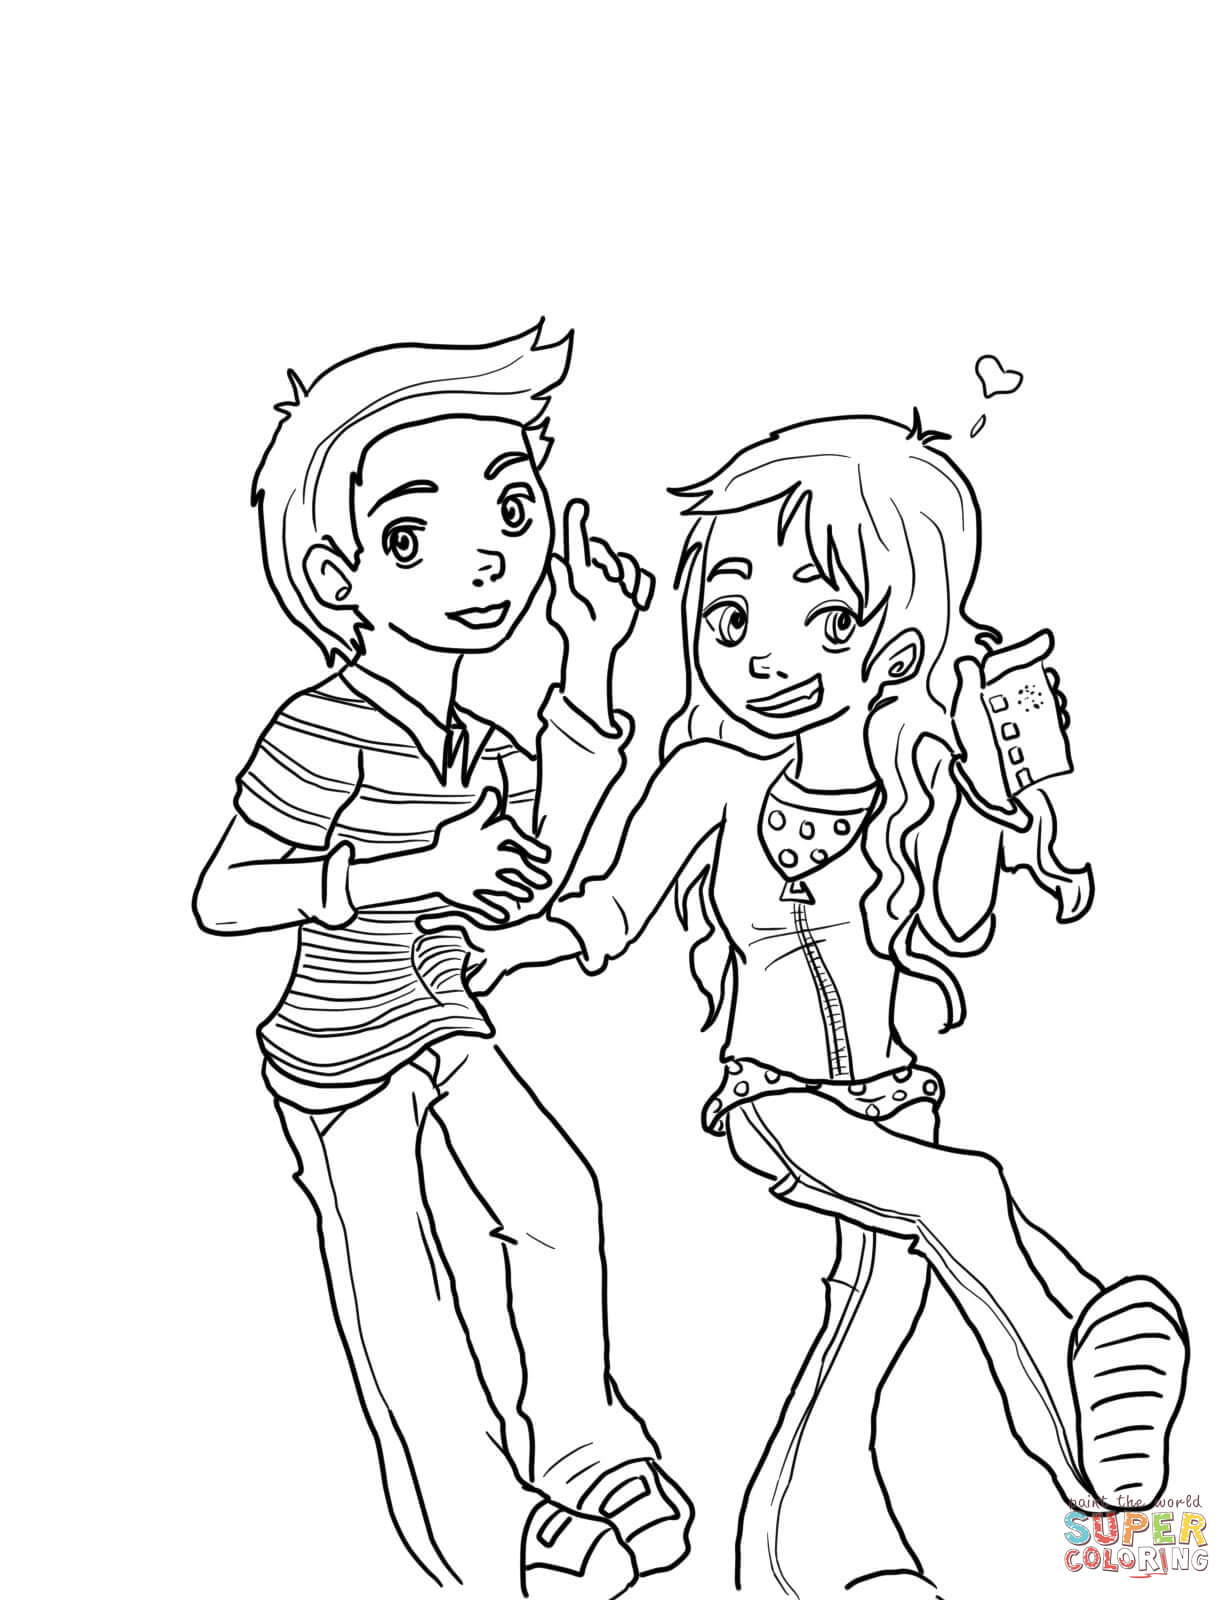 sam and cat coloring pages sam and cat coloring pictures jawar cat and pages coloring sam